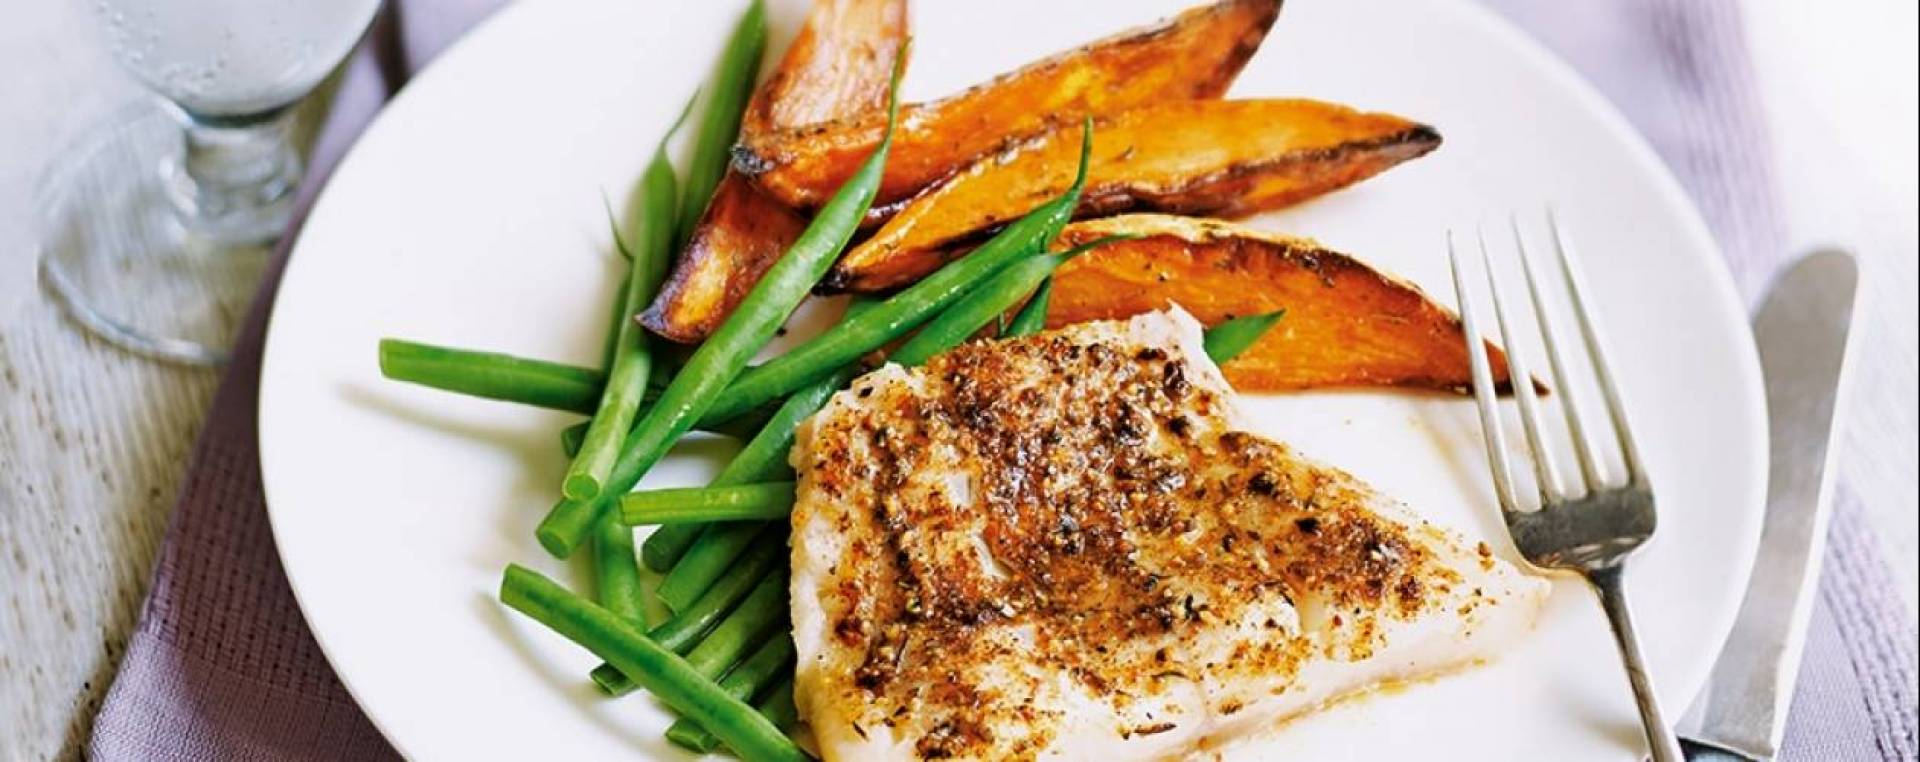 Macro Meal: Cajun Cod & Texmex Sweet Potatoes  | Served with Green Beans